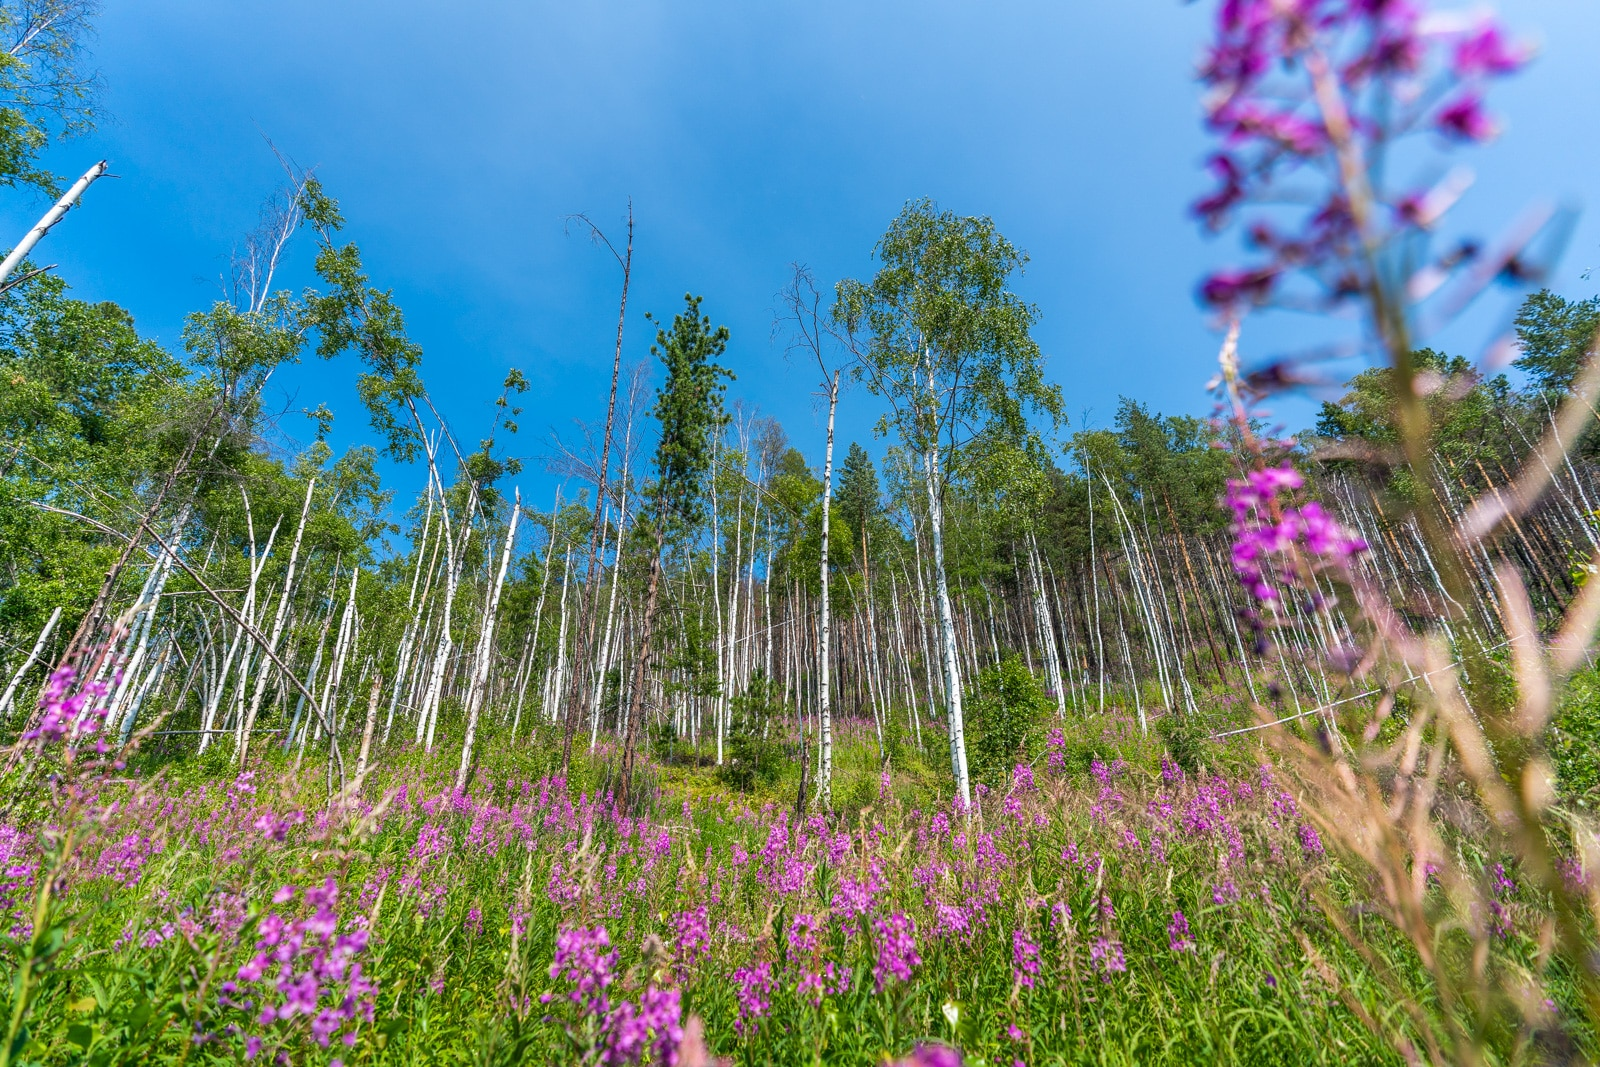 Wildflowers in a birch forest in Siberia, Russia